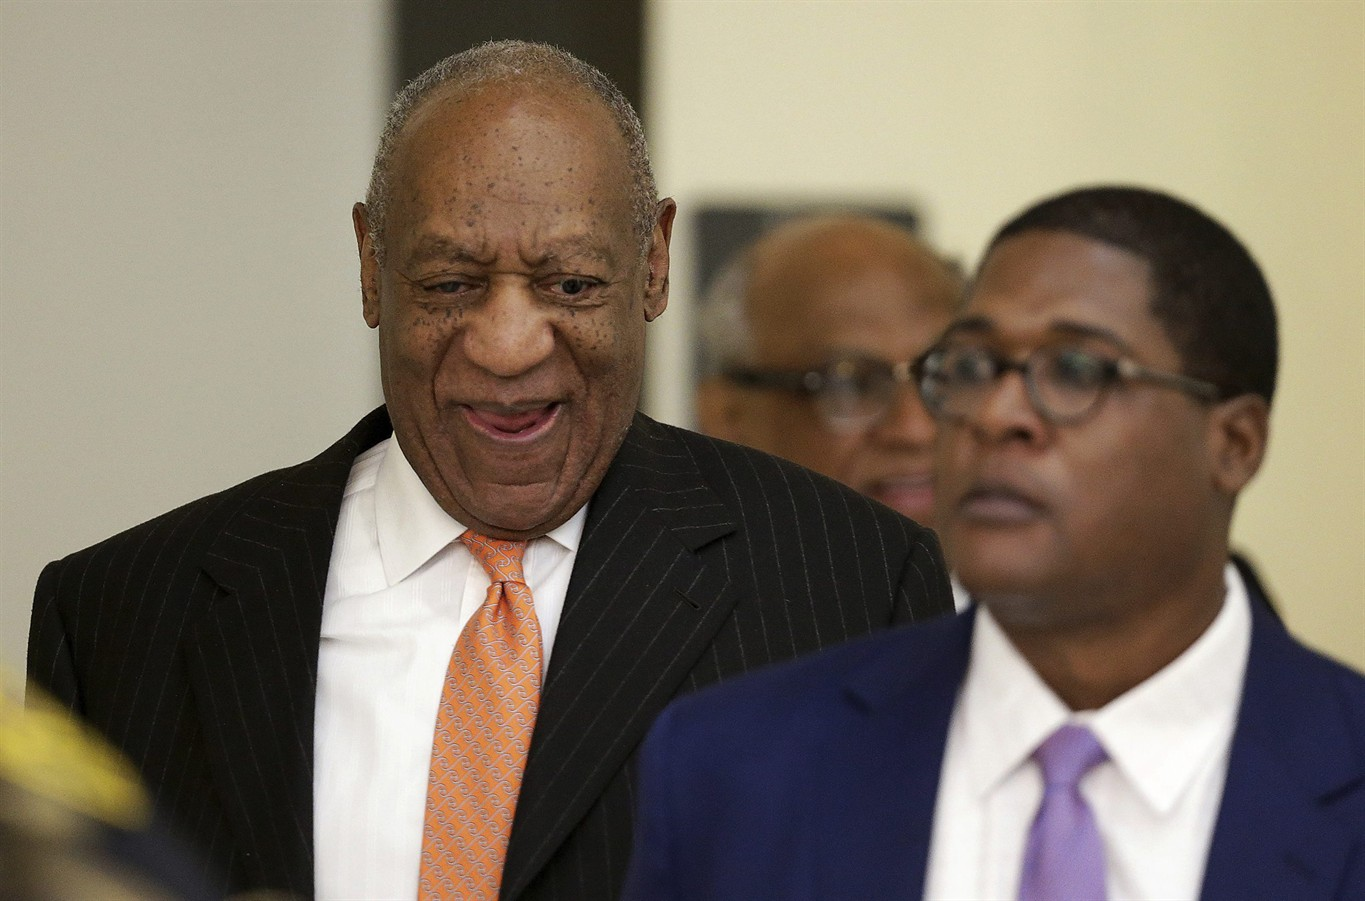 Cosby lawyers portray accuser as 'con artist' seeking payout